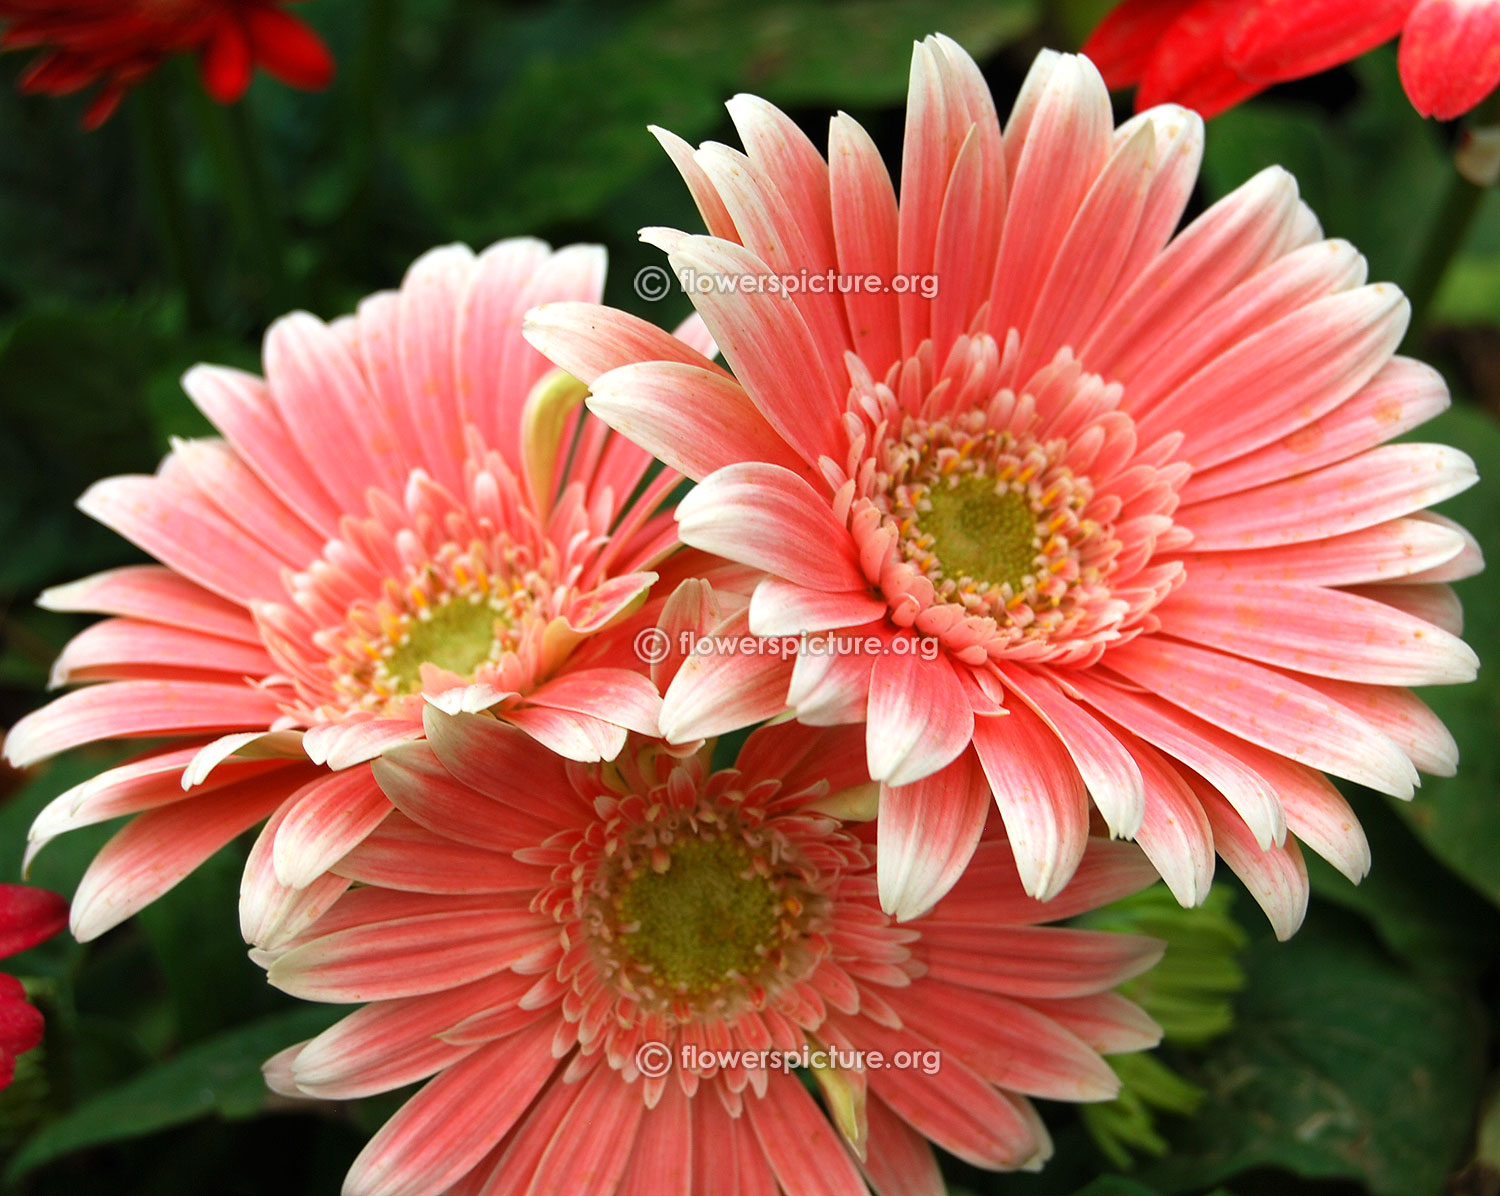 Gerbera daisy varieties salmon pink gerbera daisy lalbagh krumbiegel remembered flower show jan 2016 dhlflorist Choice Image